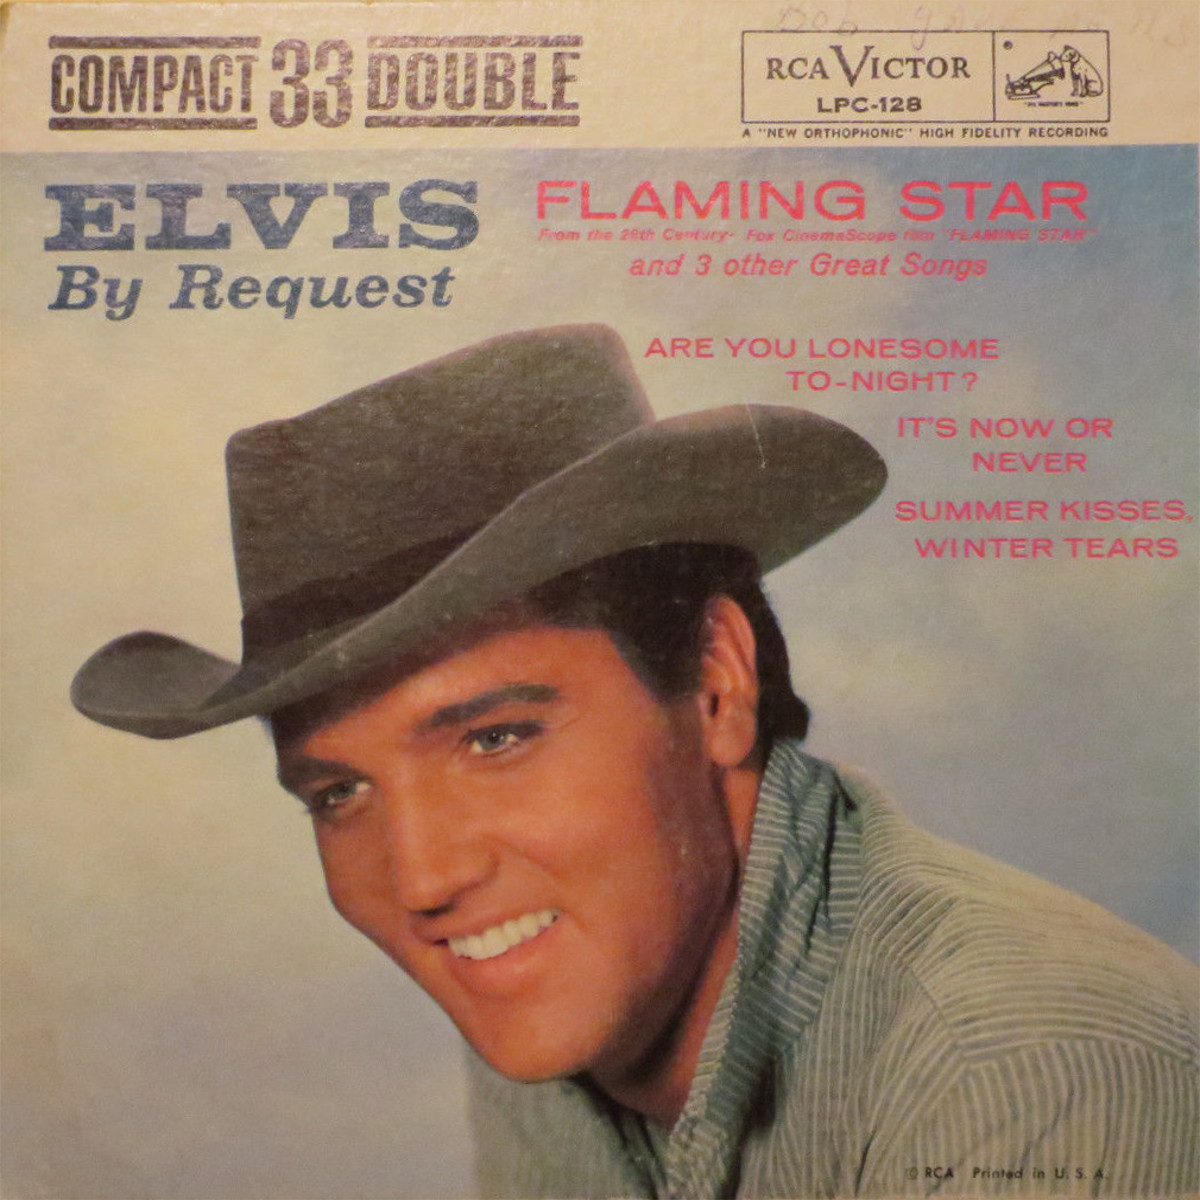 ELVIS BY REQUEST - FLAMING STAR 1444irf7